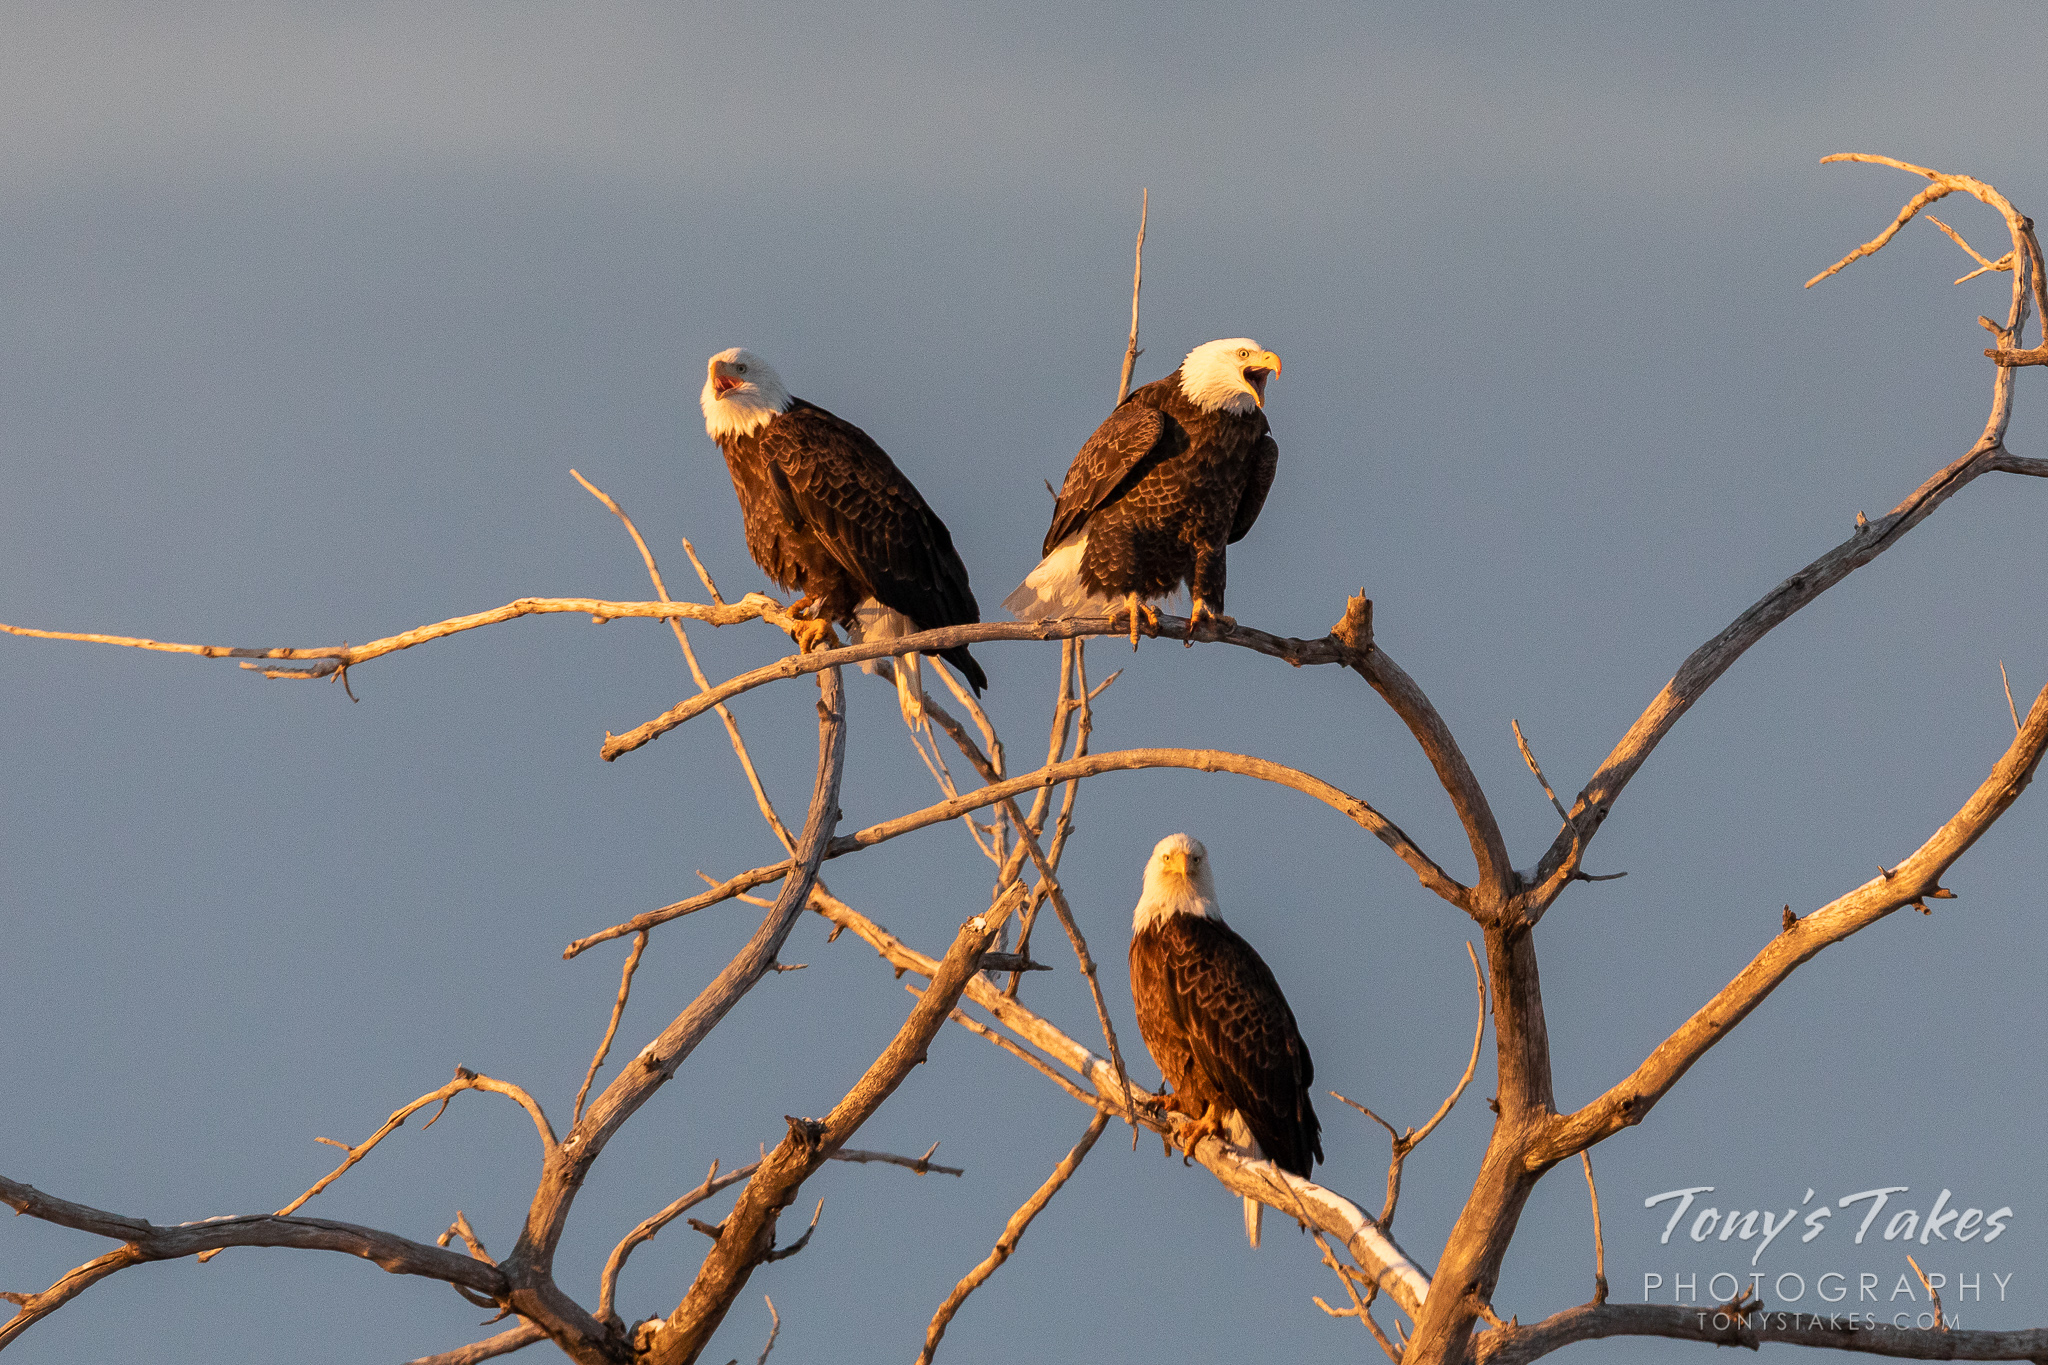 A bald eagle joins two others in Adams County, Colorado at dawn. (© Tony's Takes)